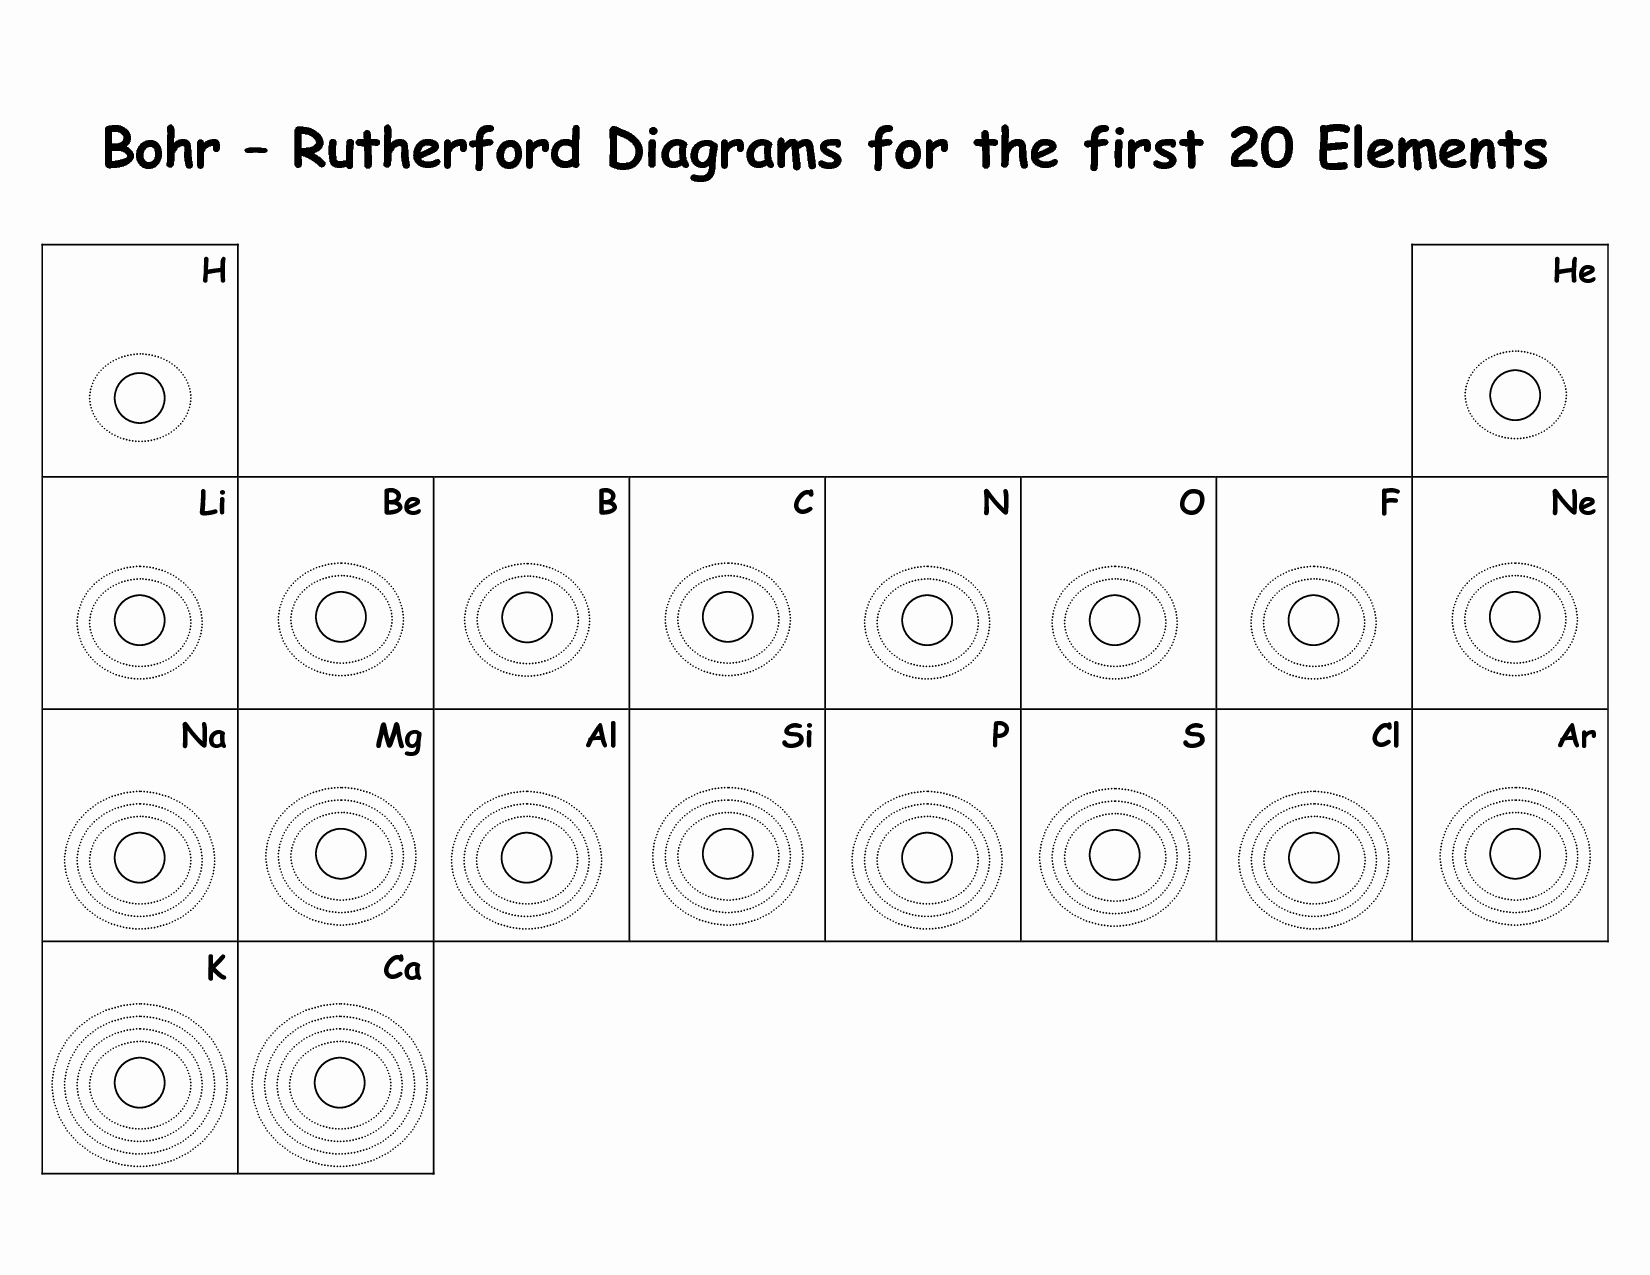 Bohr atomic Models Worksheet Elegant Blank Bohr Model Worksheet Blank Fill In for First 20